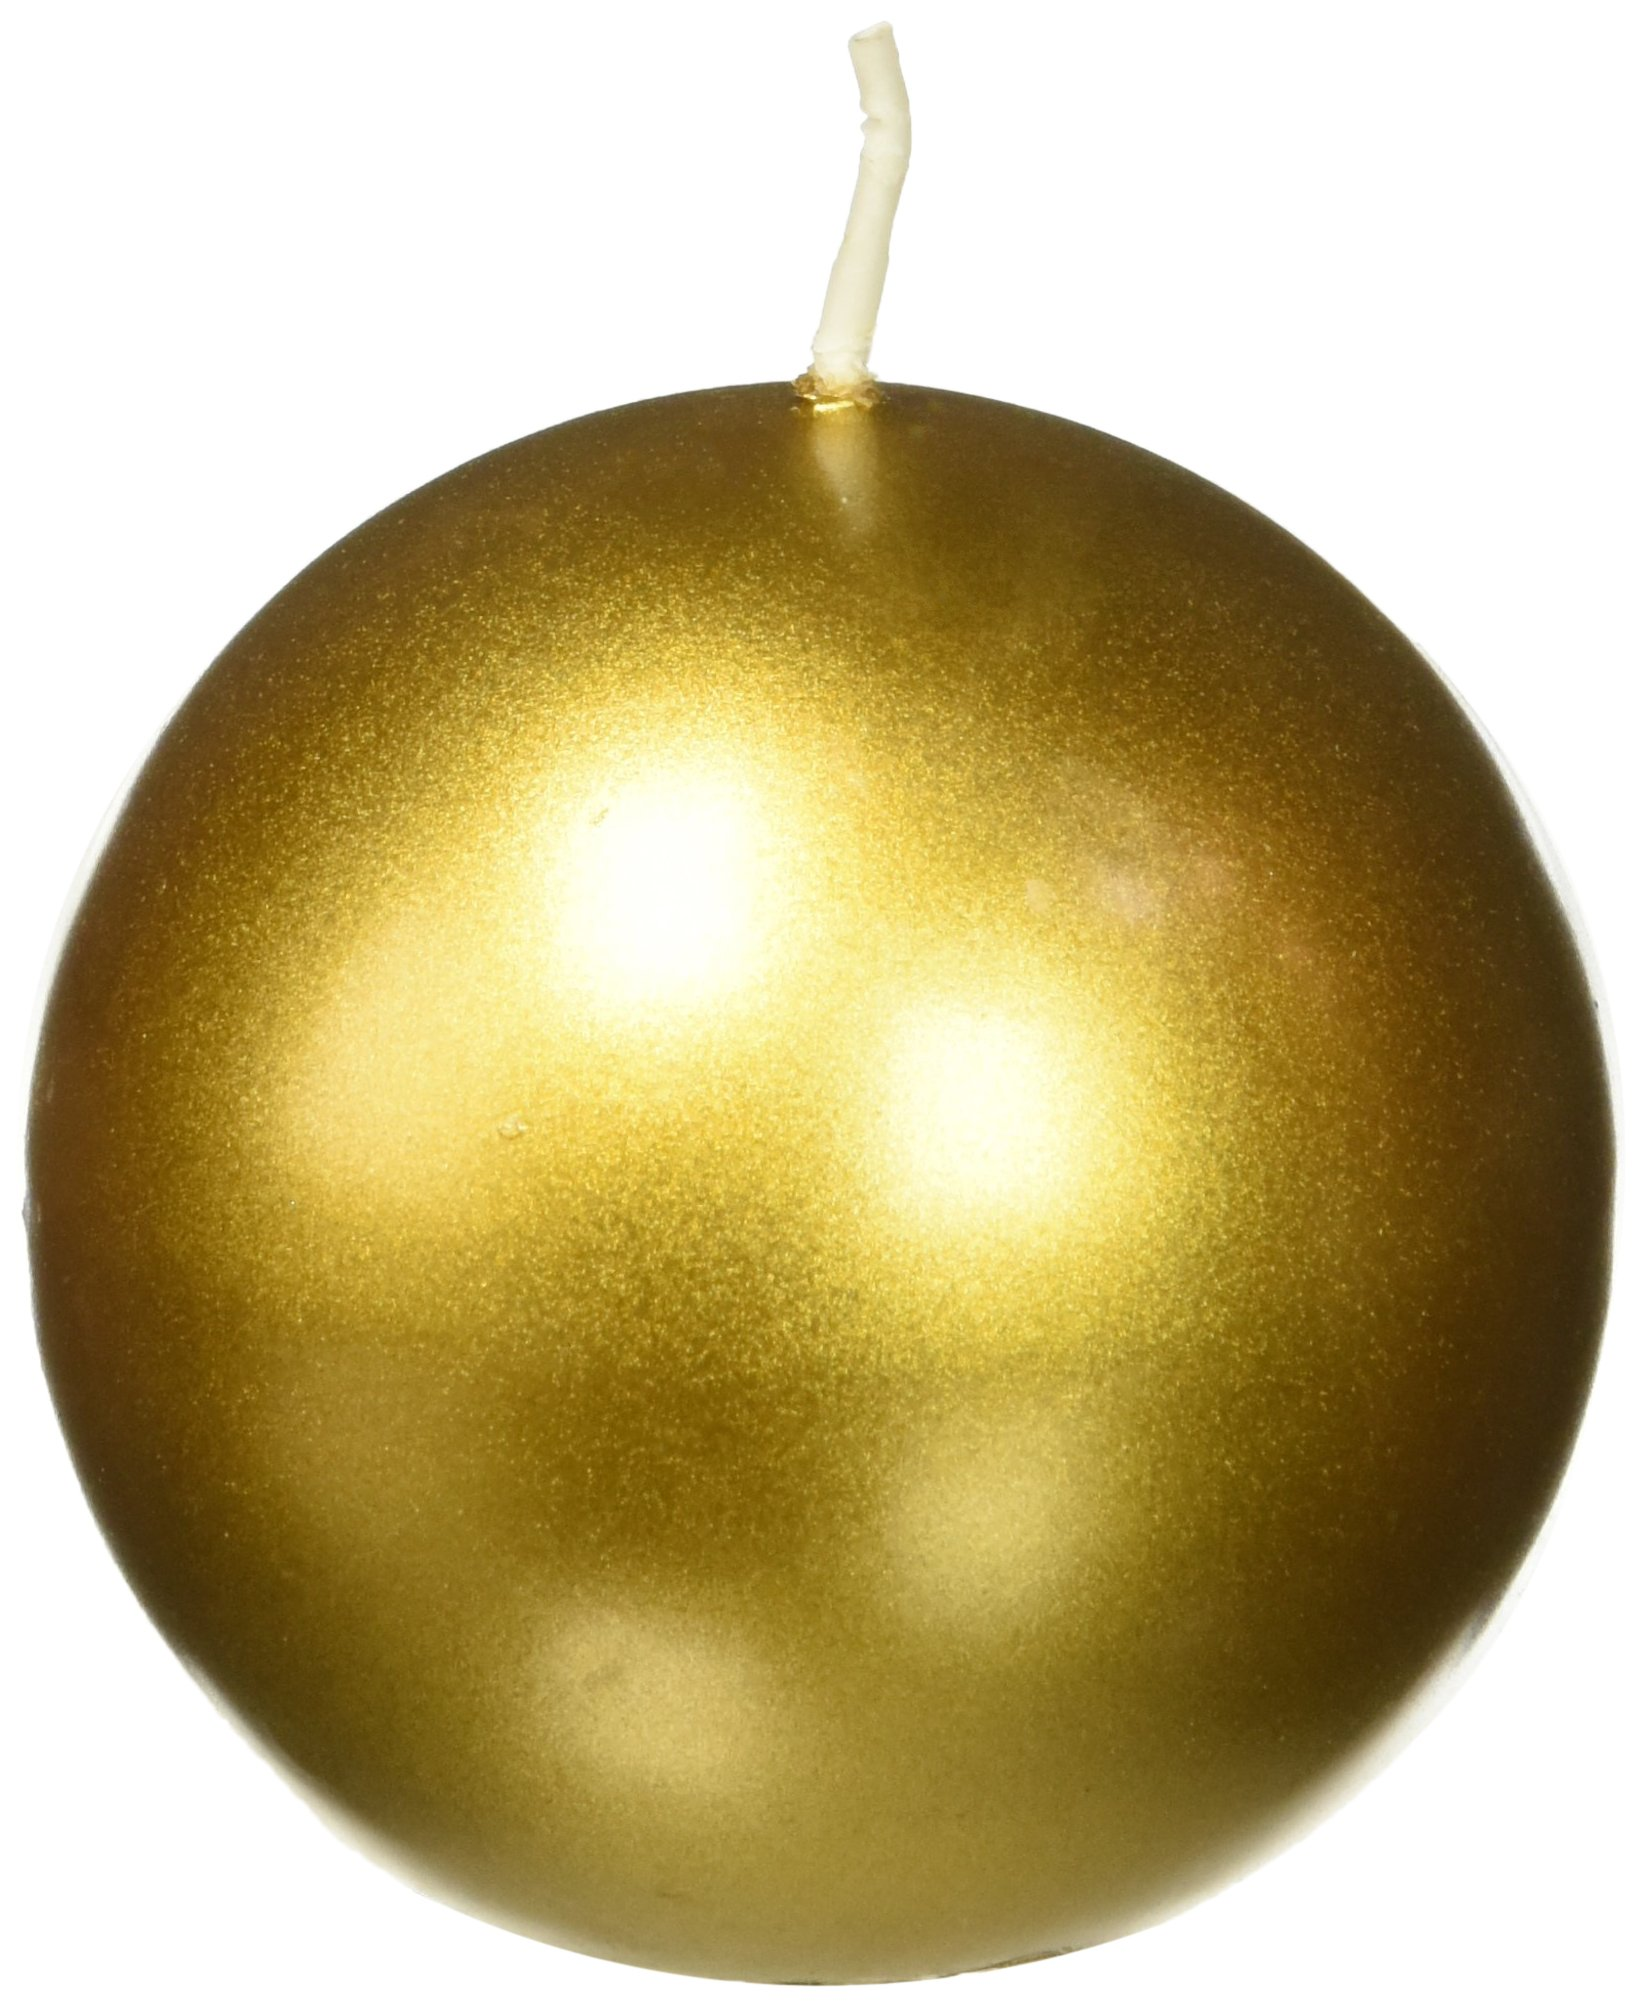 Zest Candle 6-Piece Ball Candles, 3-Inch, Metallic Gold by Zest Candle